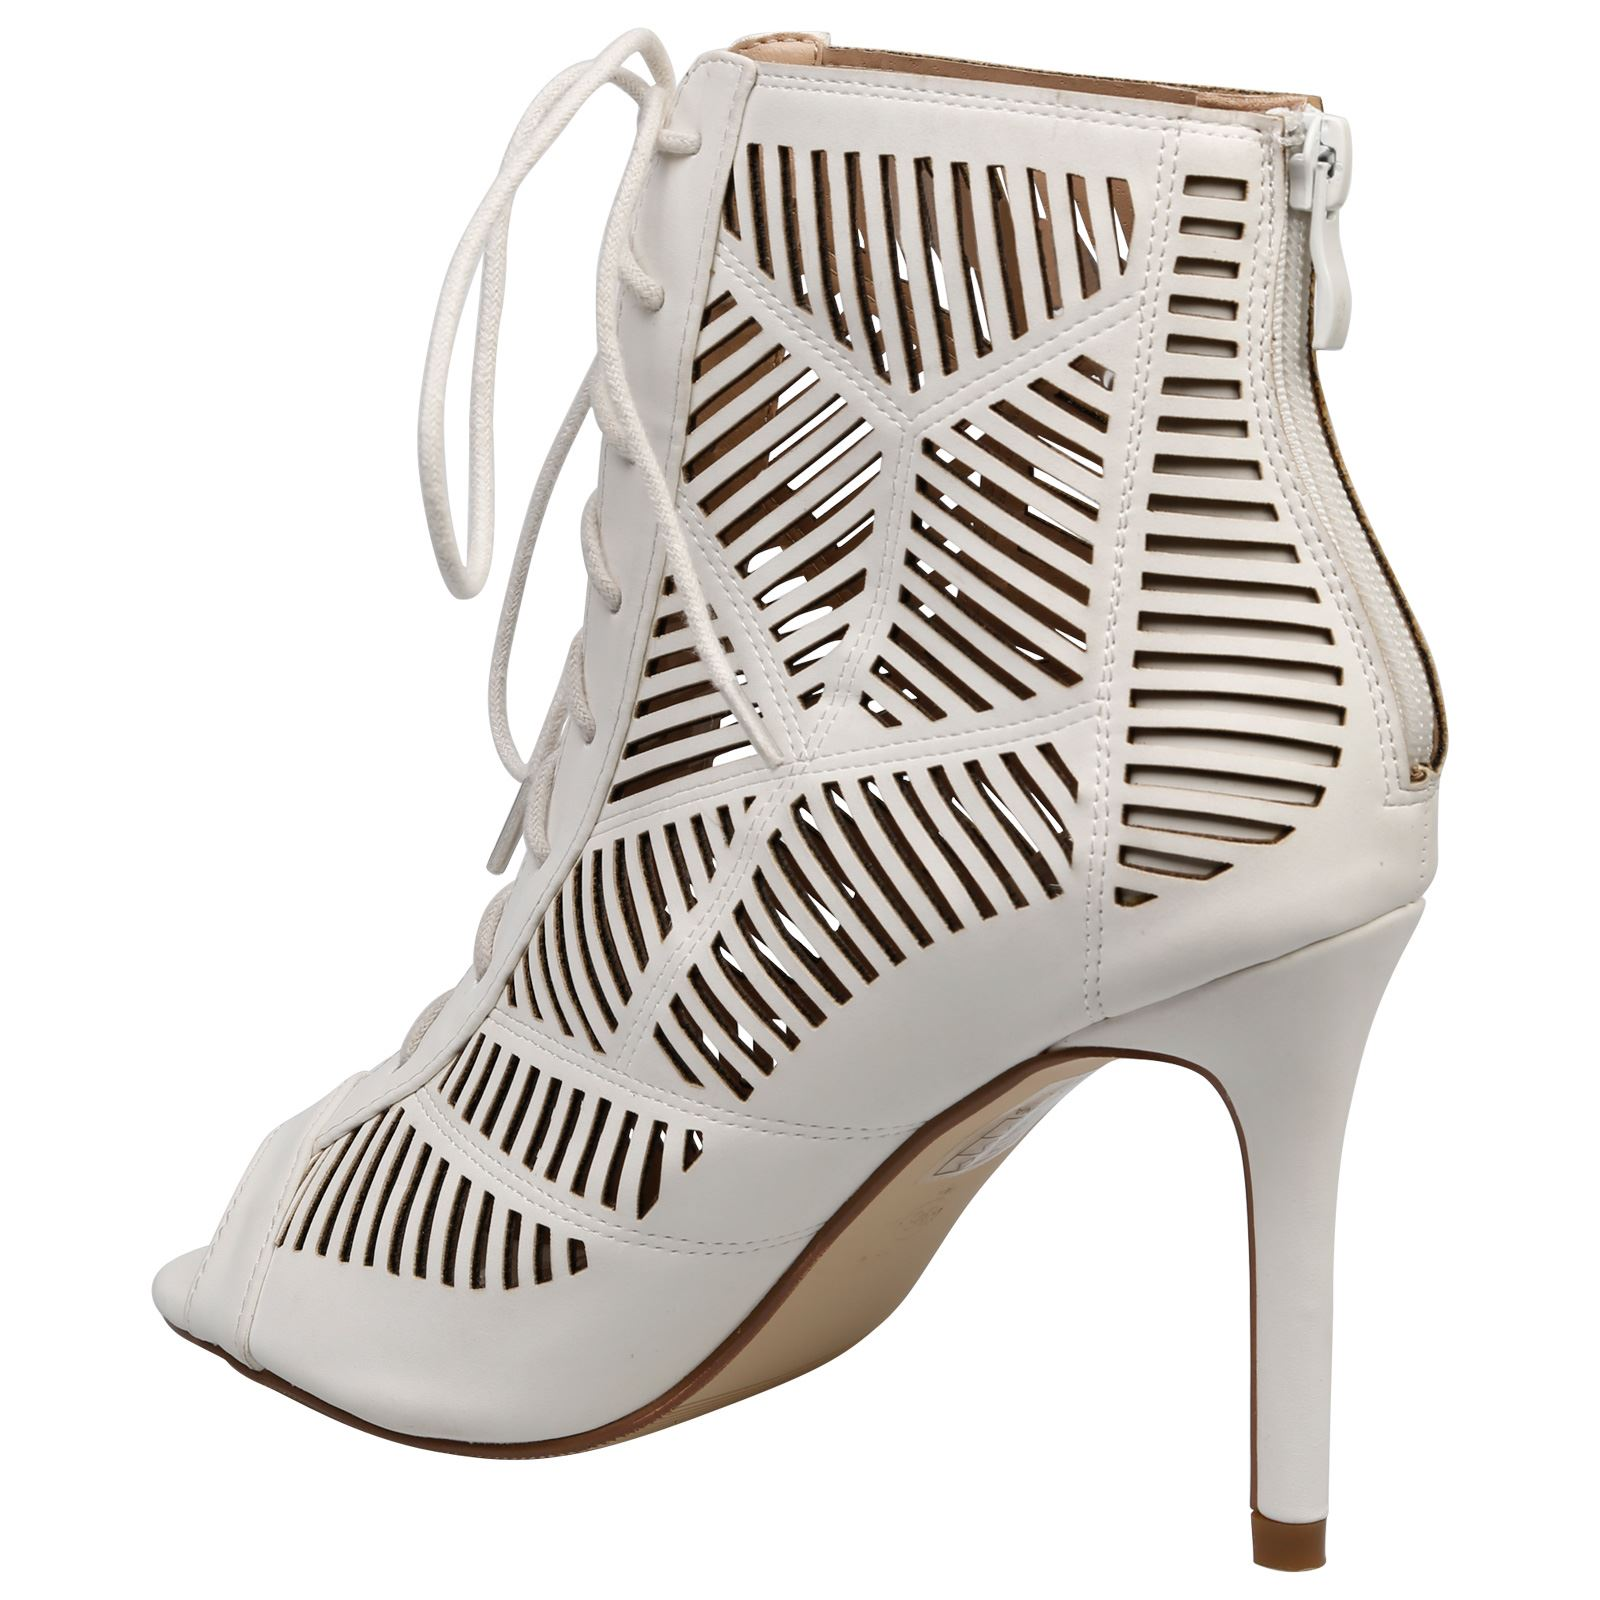 Anais-Womens-High-Heels-Stilettos-Lace-Up-Peep-Toe-Ankle-Boots-Ladies-Shoes-Size thumbnail 16